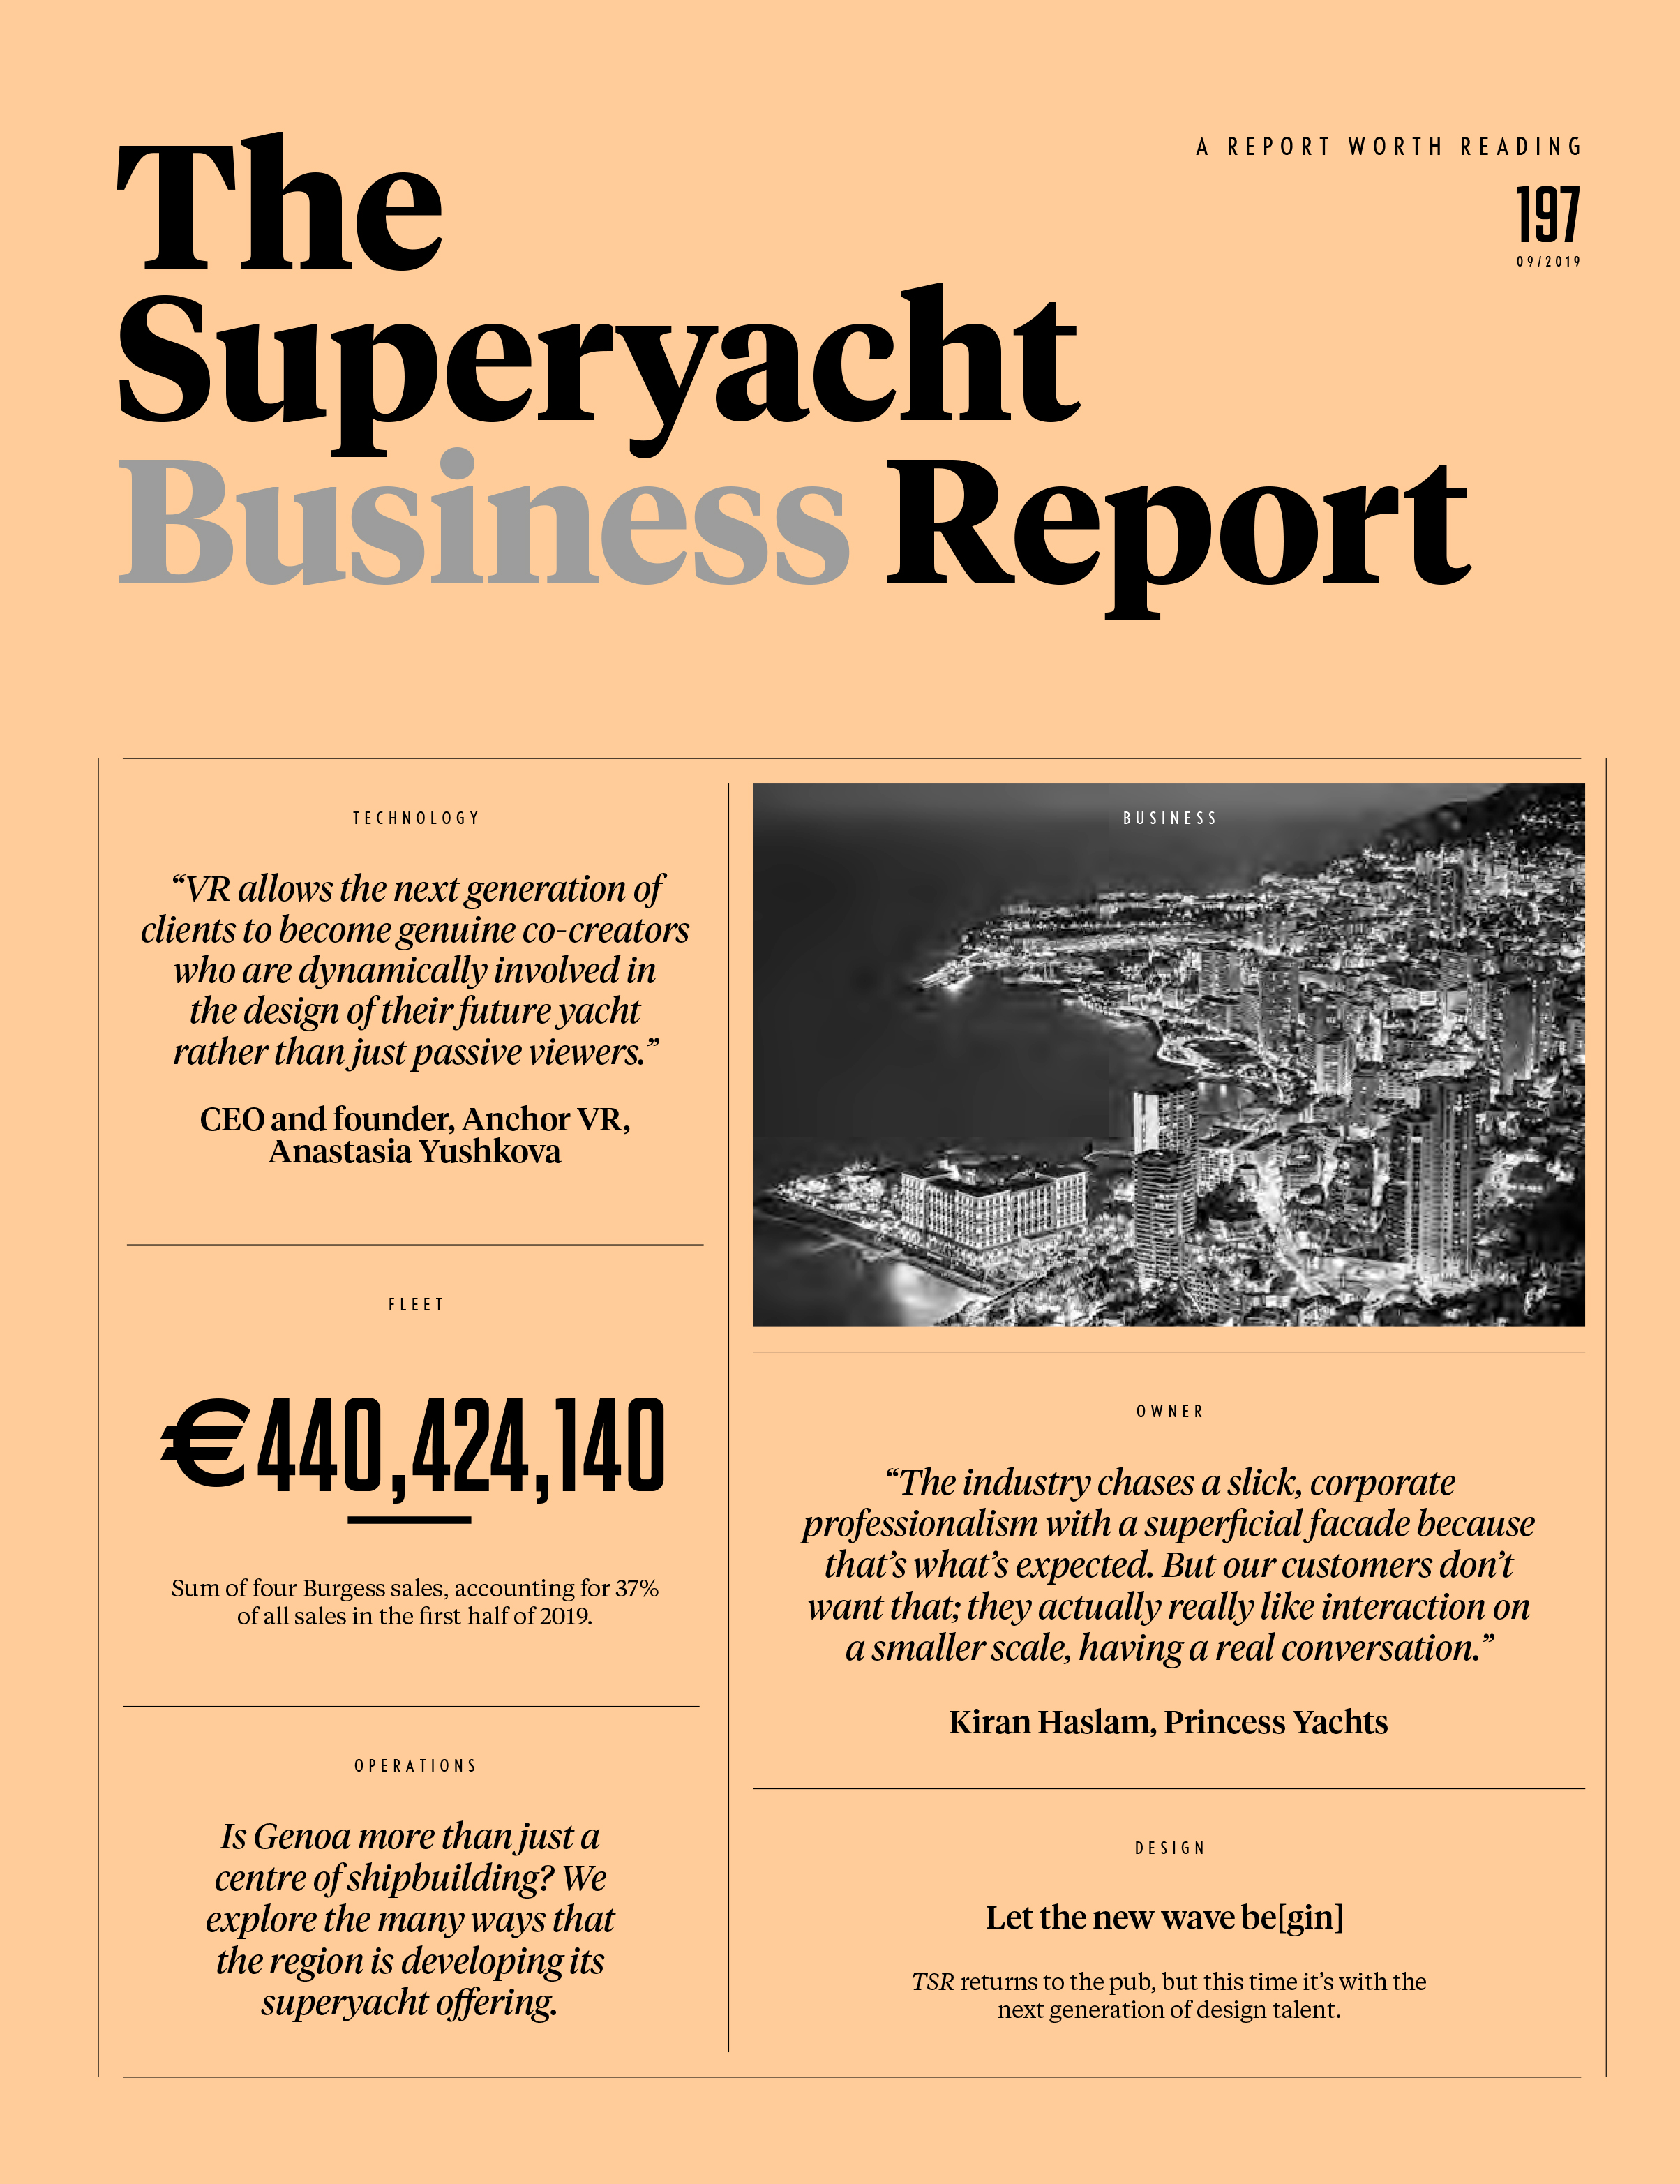 The Superyacht Business Report-001-1.jpg